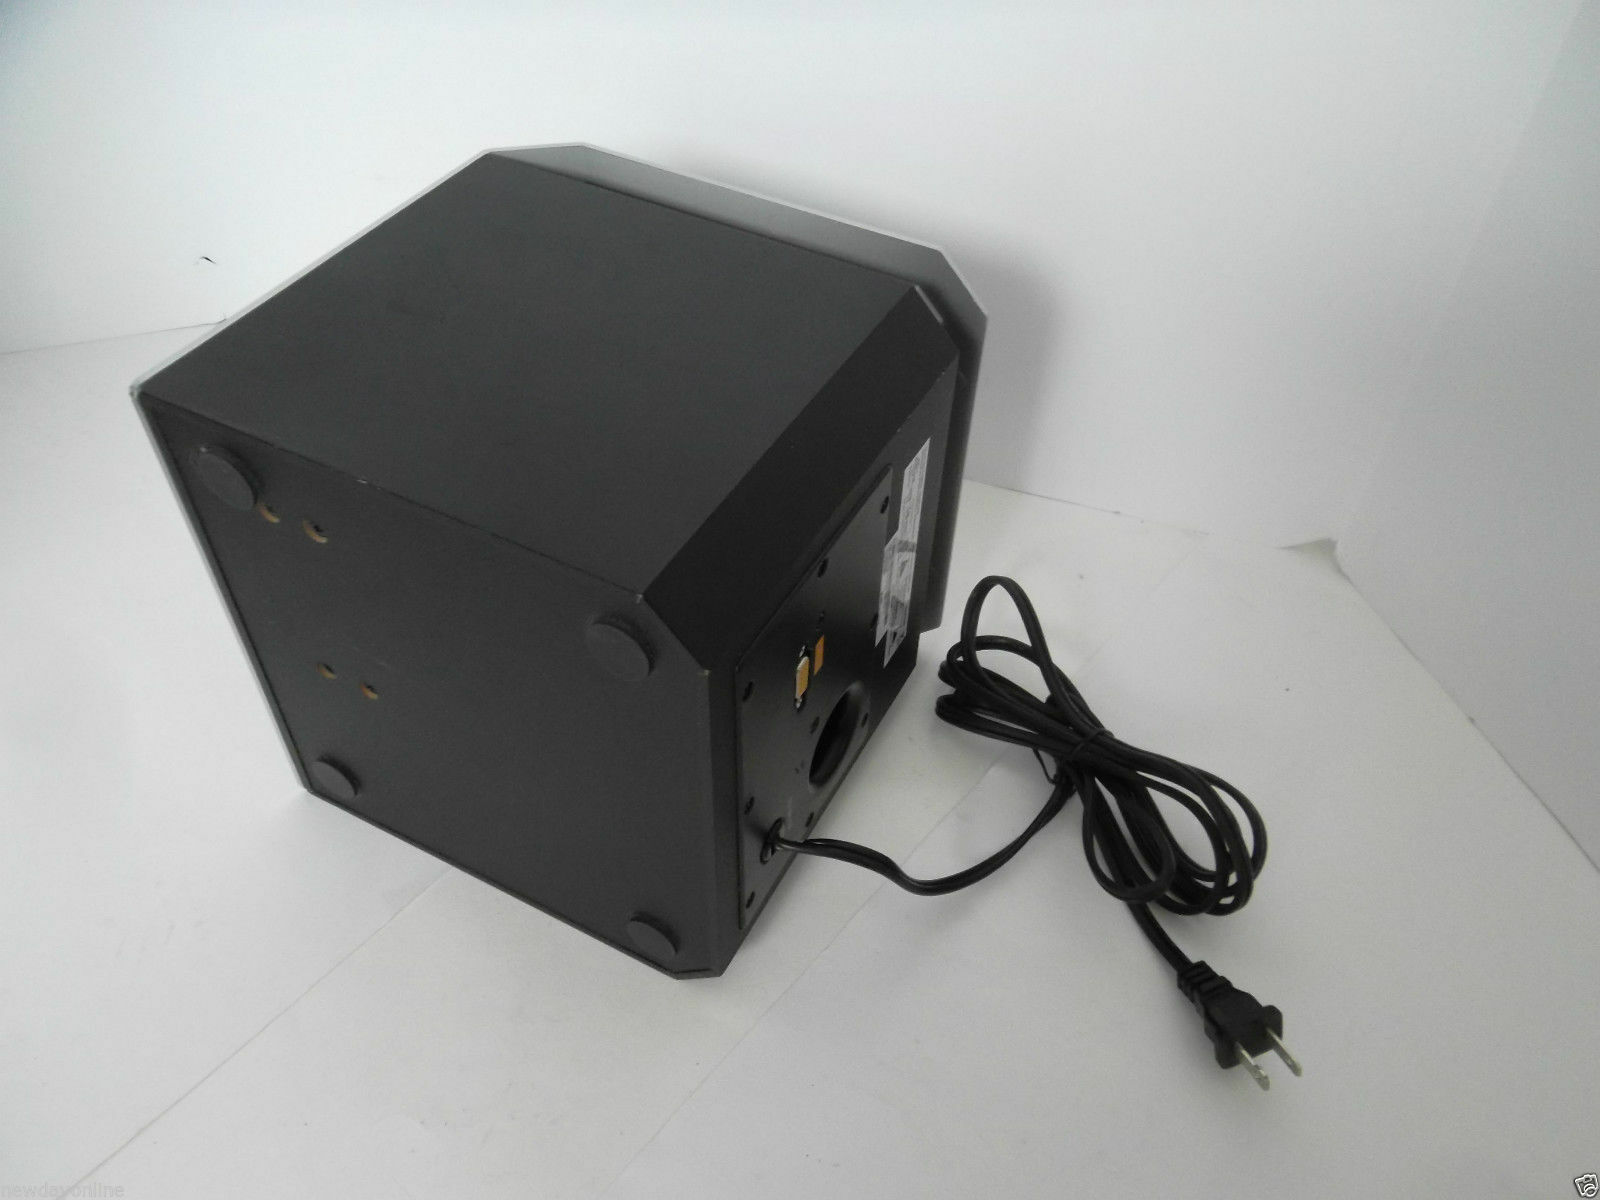 Dell Zylux A525 Multimedia 2.1-channel Computer Speaker Subwoofer AC Cf093  Th760 | eBay